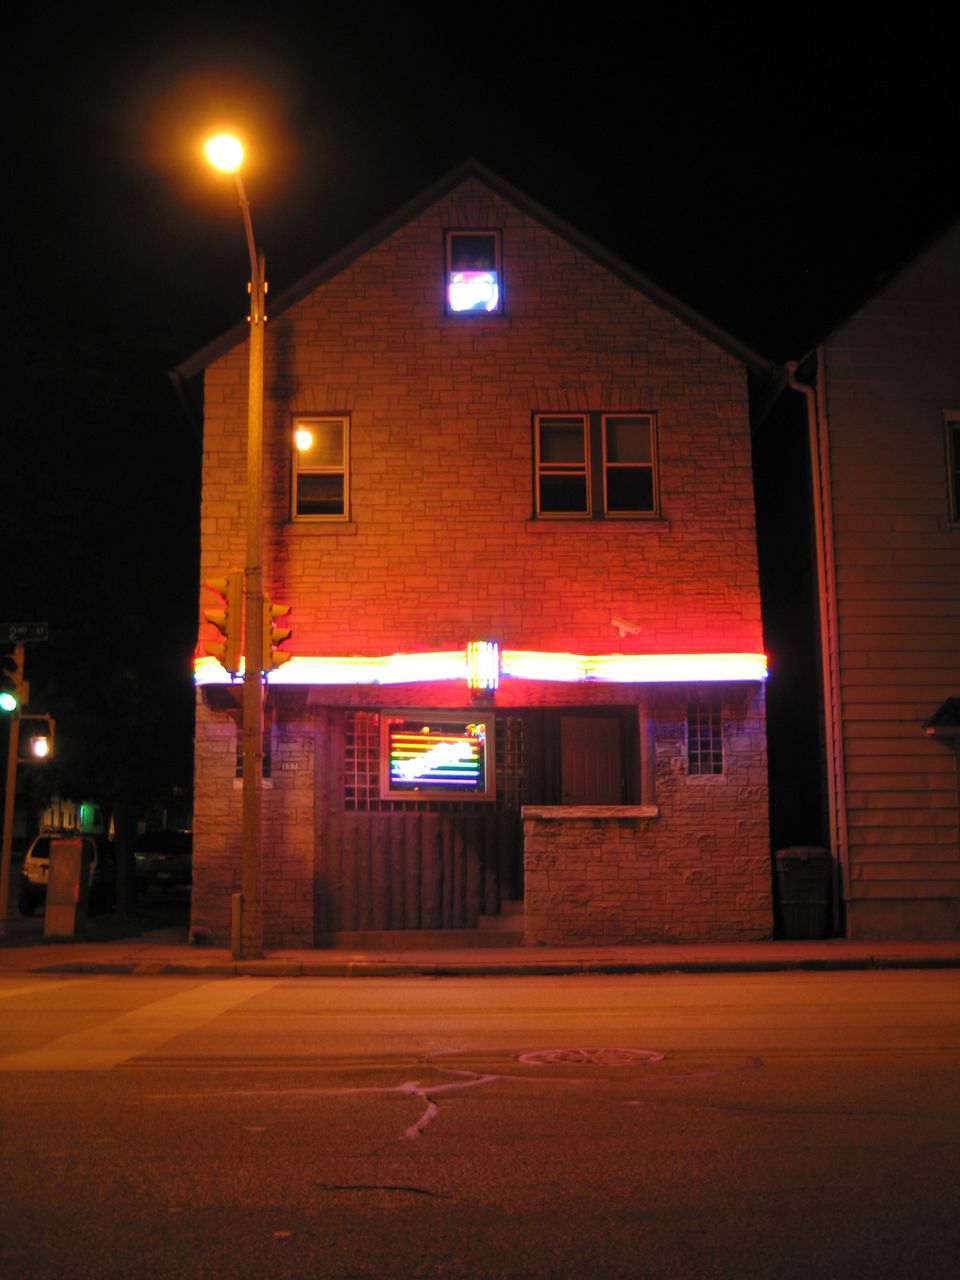 south milwaukee gay singles The 15 best places that are good for singles in milwaukee  one of the best gay bars in the greater milwaukee area  south shore terrace beer garden 84.